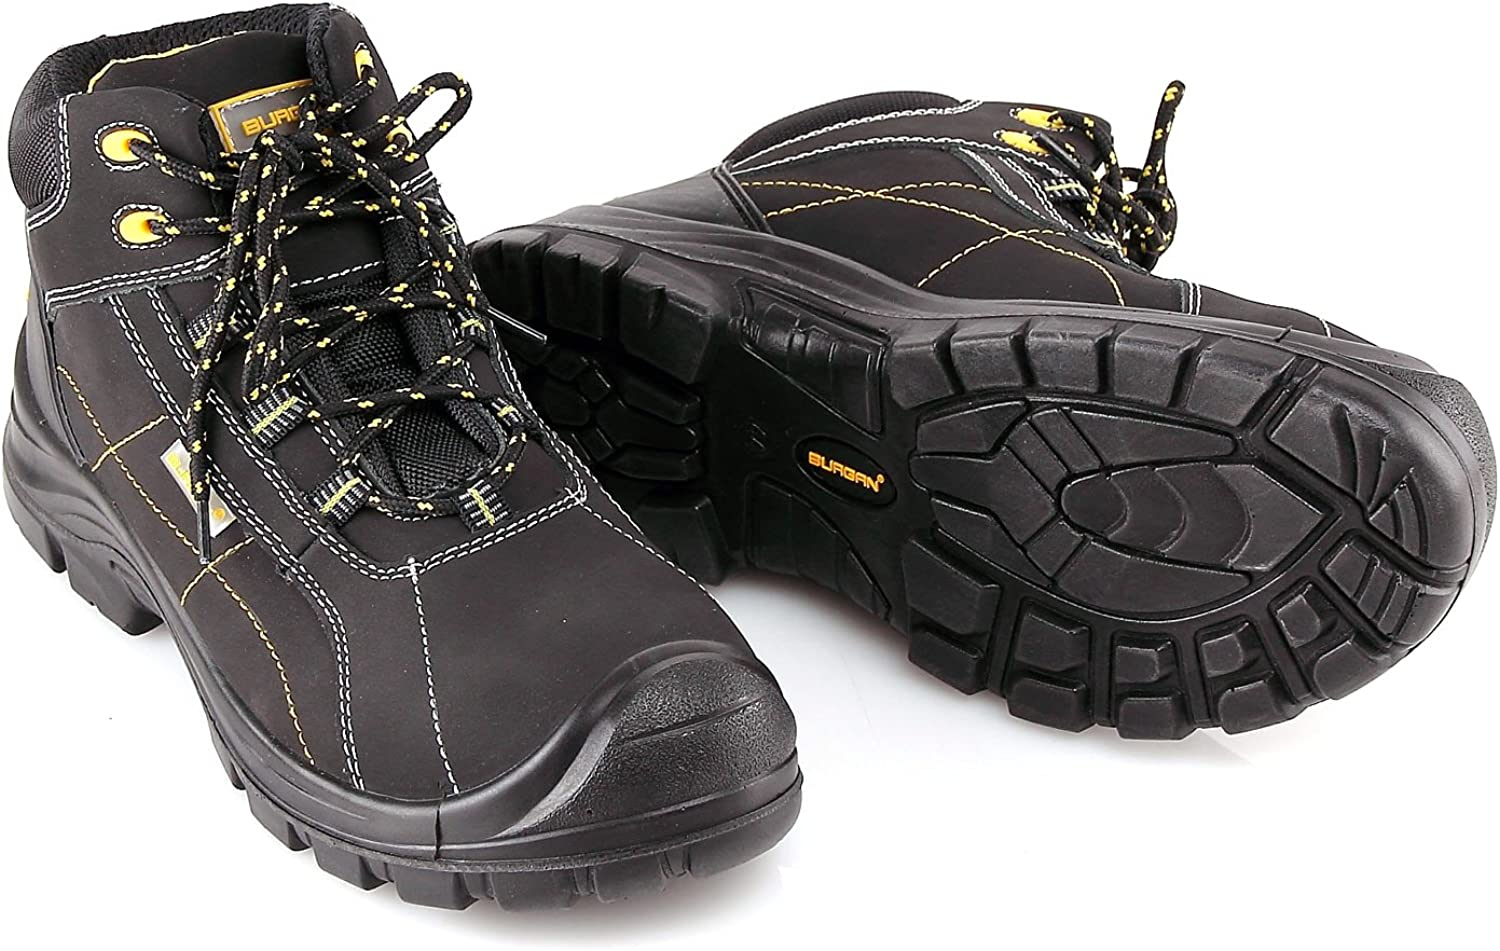 BURGAN 290 Safety Work Boot with Composite Anti-Penetration Midsole and Toe - Sport Casual Inspired Design for Men and Women